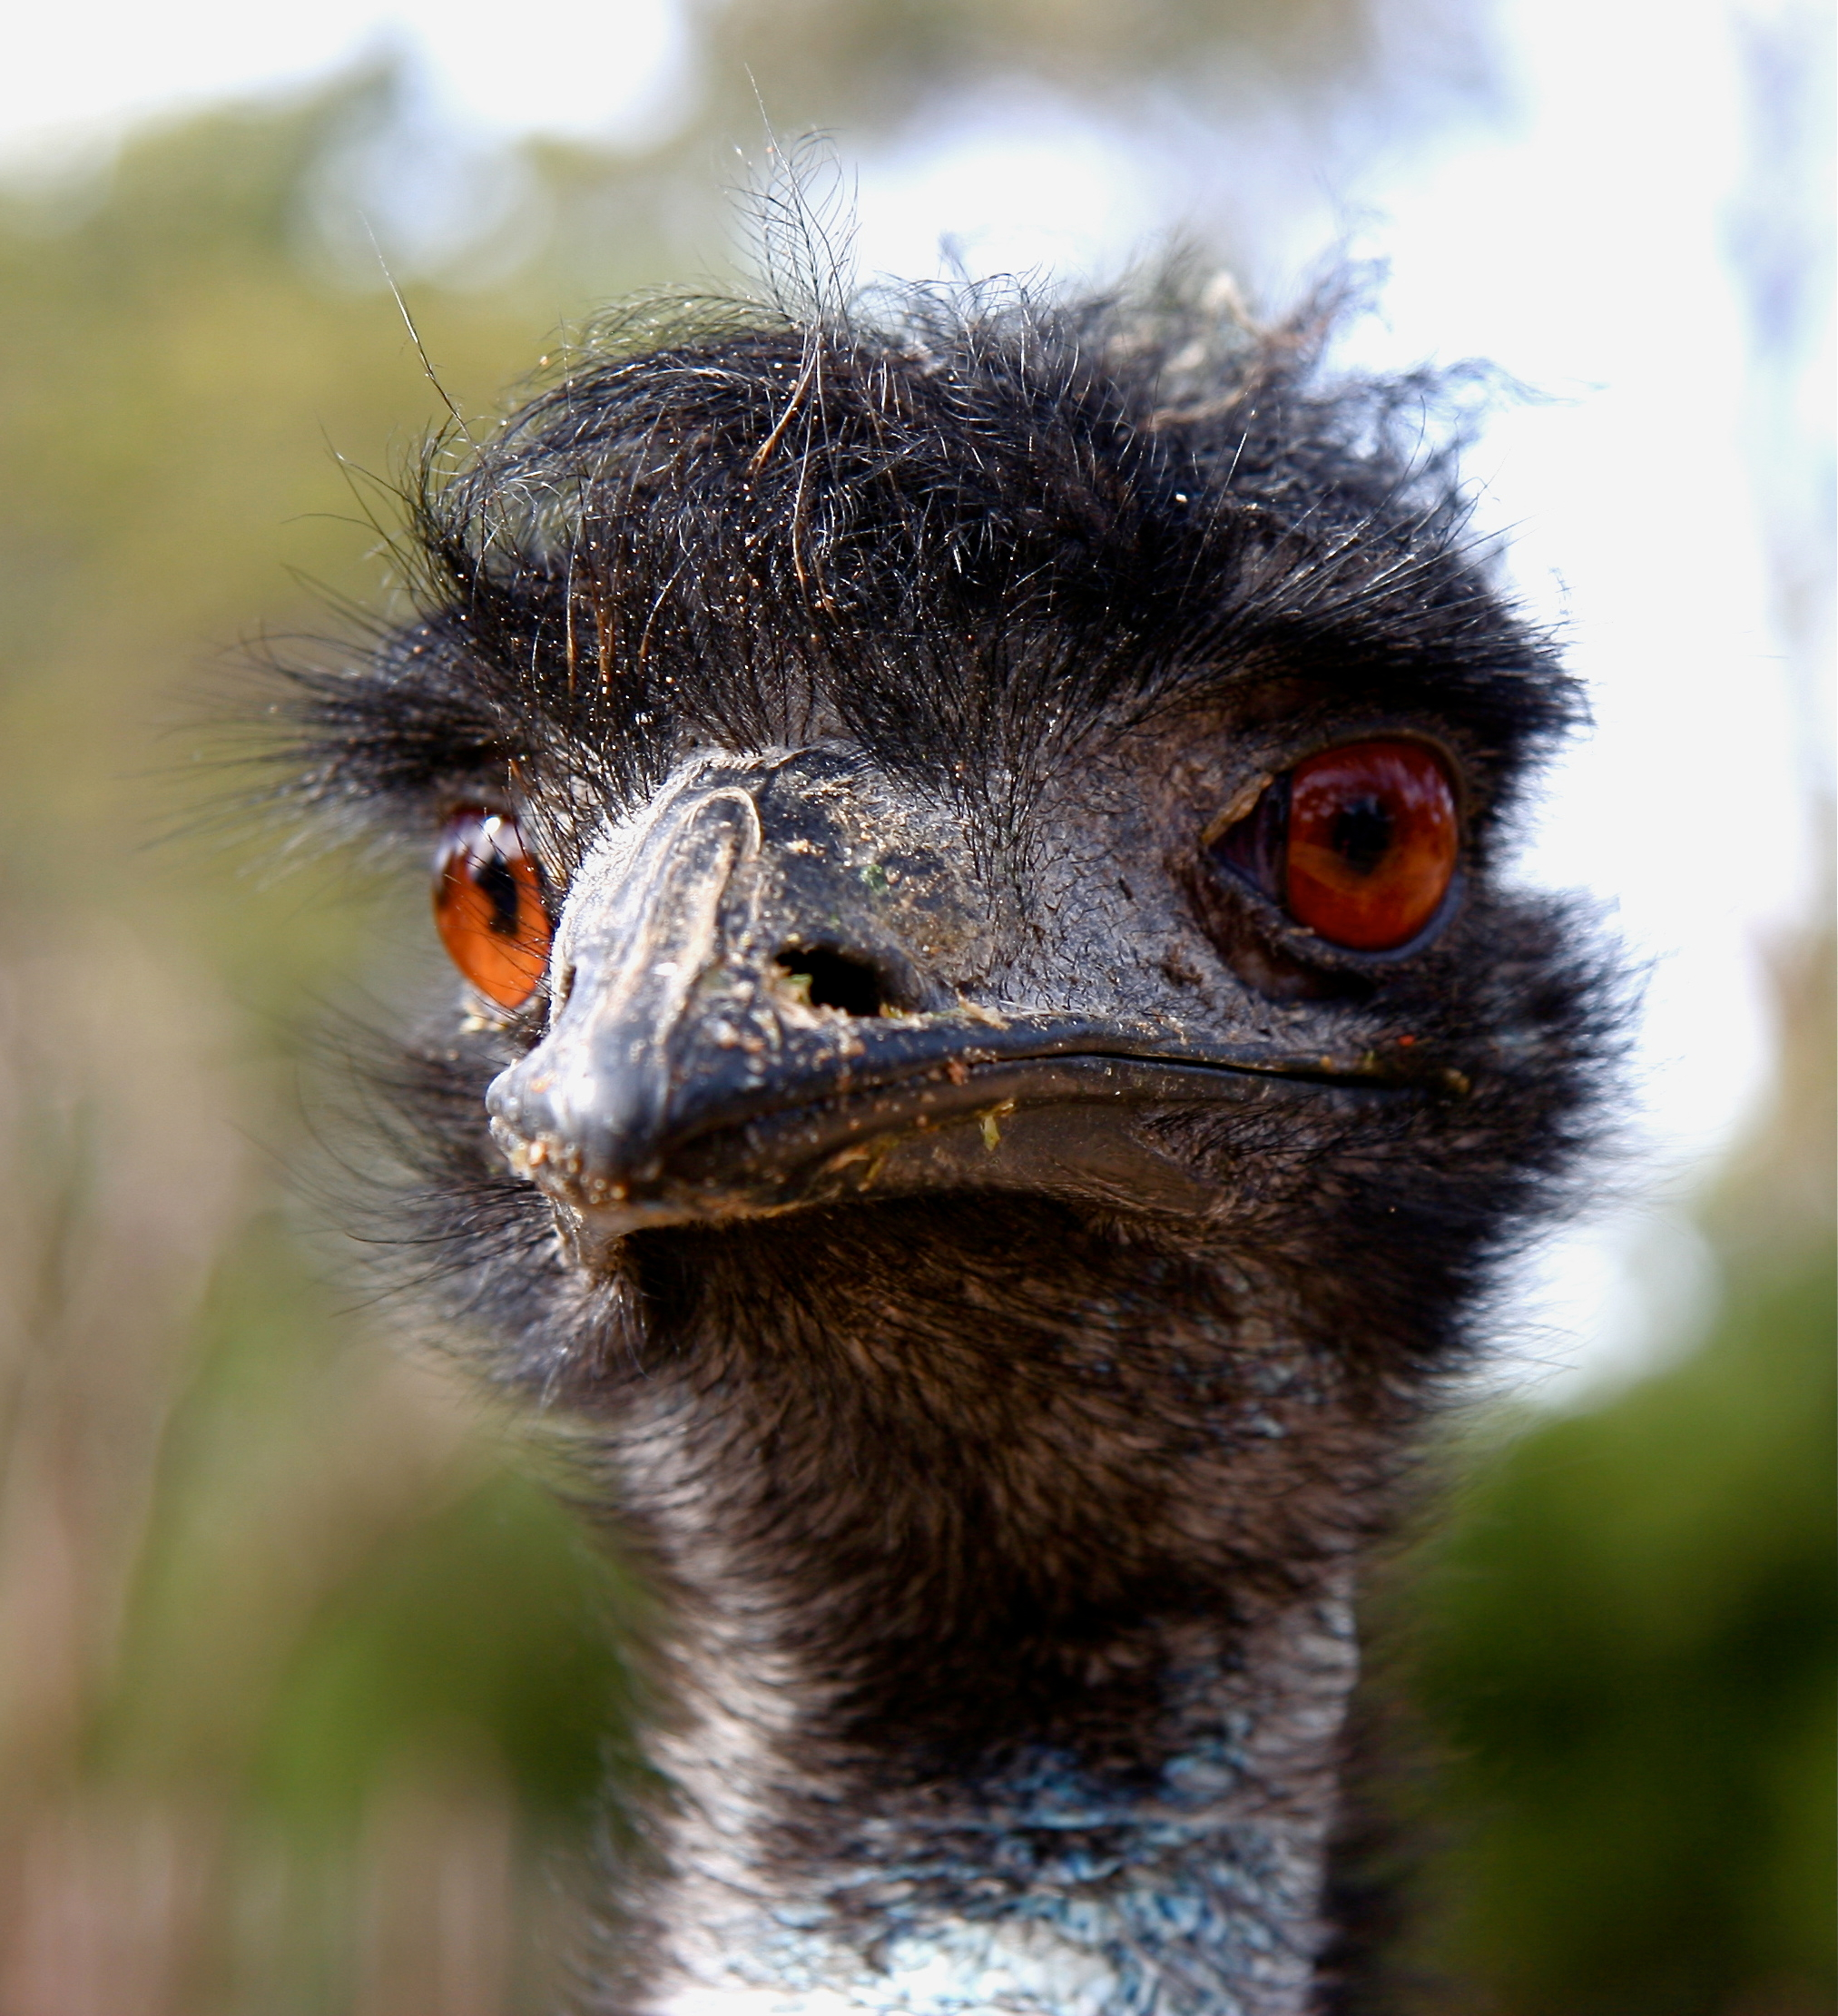 File:Emu (Dromaius novaehollandiae) -head.jpg - Wikipedia, the free ...